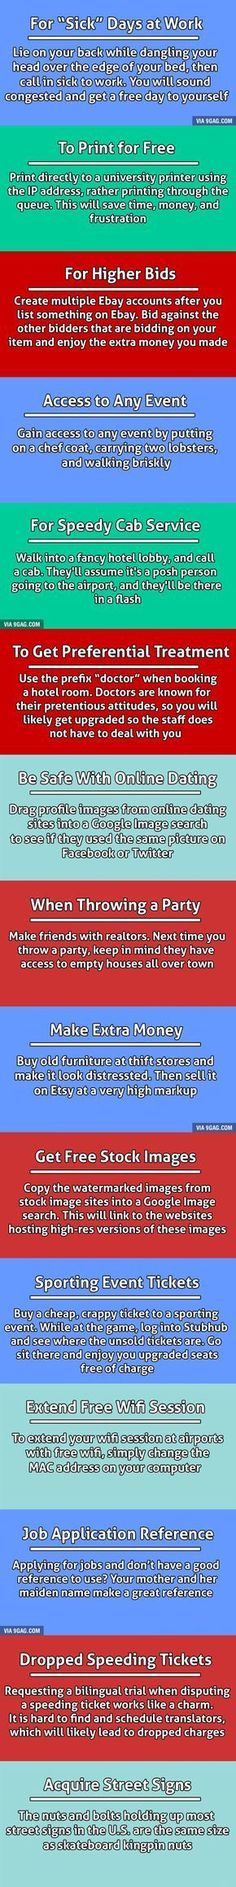 DIY Life Hacks & Crafts : 15 Unethical Life Hacks To Help You Get What You Want. - https://diyloop.com/lifehacks/diy-life-hacks-crafts-15-unethical-life-hacks-to-help-you-get-what-you-want-9/ #Lifehacks